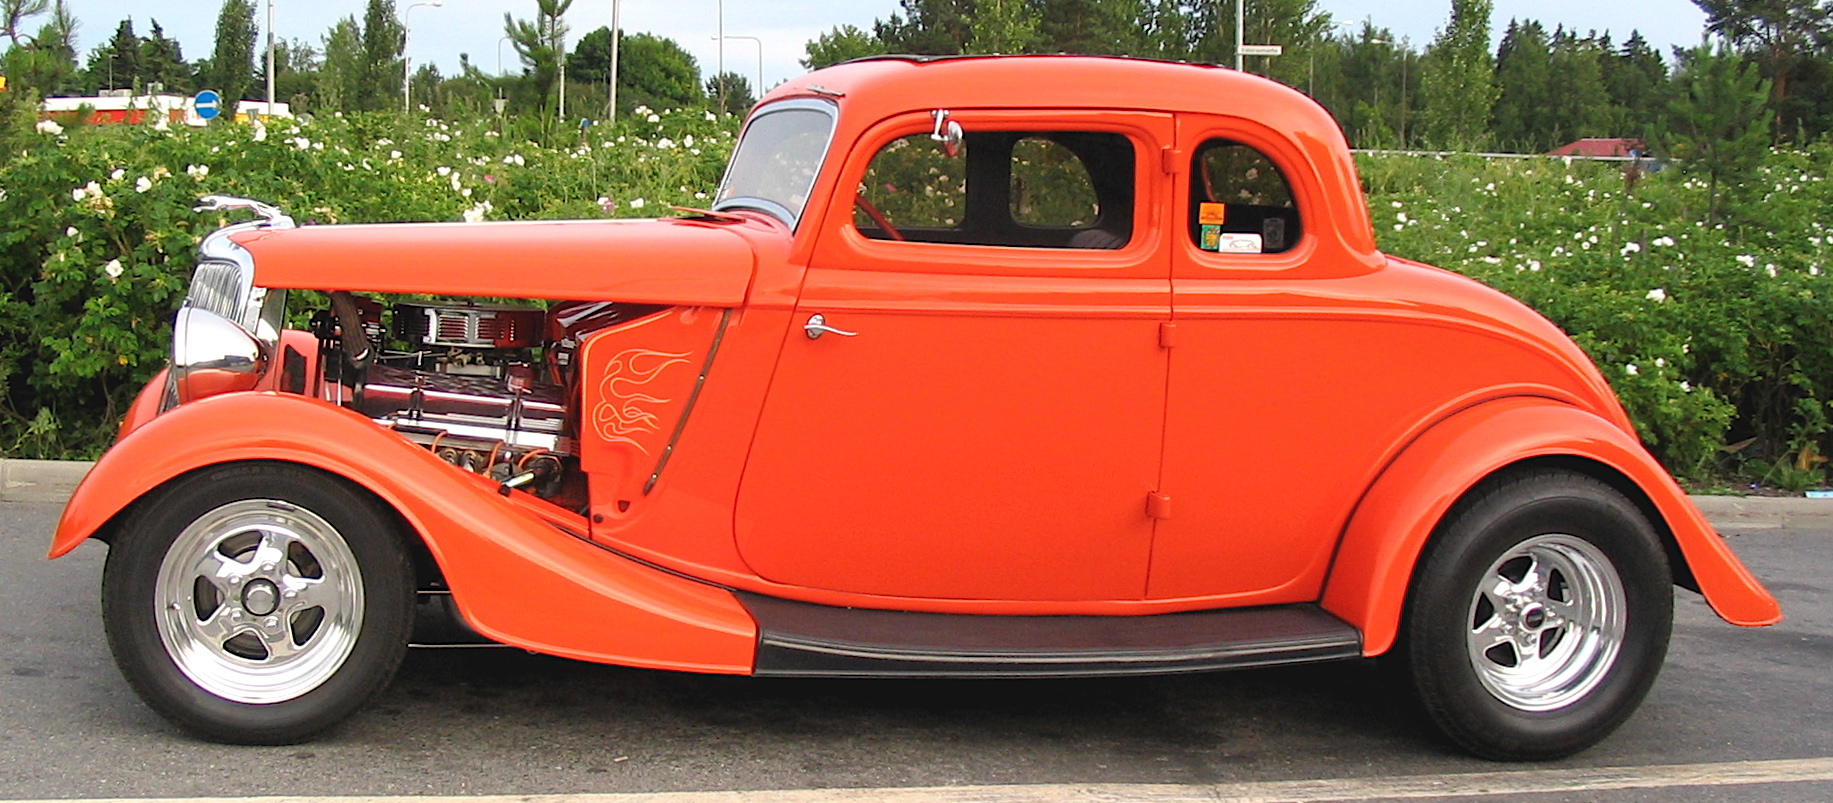 File:Ford 1934 Hot Rod.jpg - Wikimedia Commons